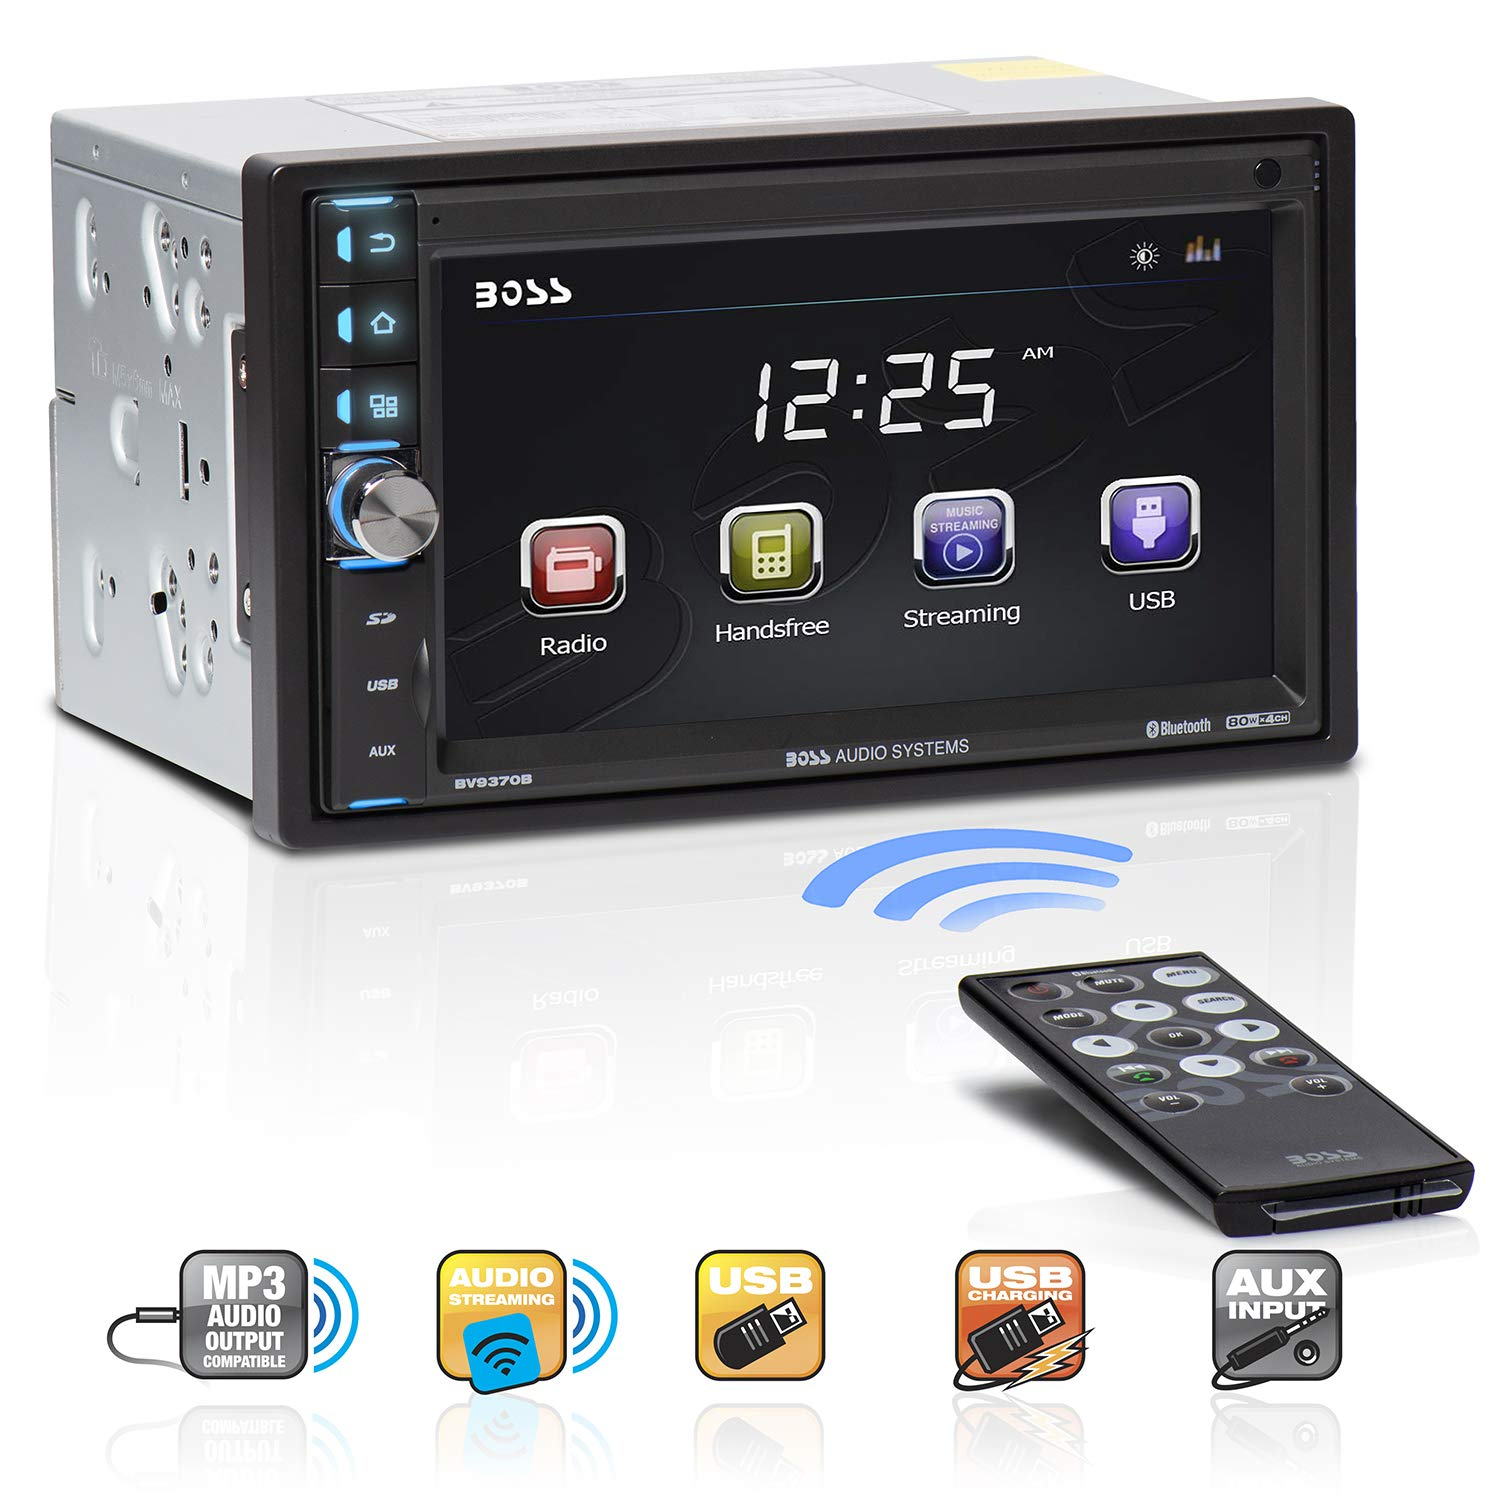 BOSS Audio Systems BV9370B Car Stereo - Double Din, Bluetooth Audio Hands-Free Calling, 6.5 Inch Touchscreen LCD Monitor, MP3 Player, USB Port, SD Card Slot, AUX Input, AM FM Radio Receiver, No CD DVD by BOSS Audio Systems